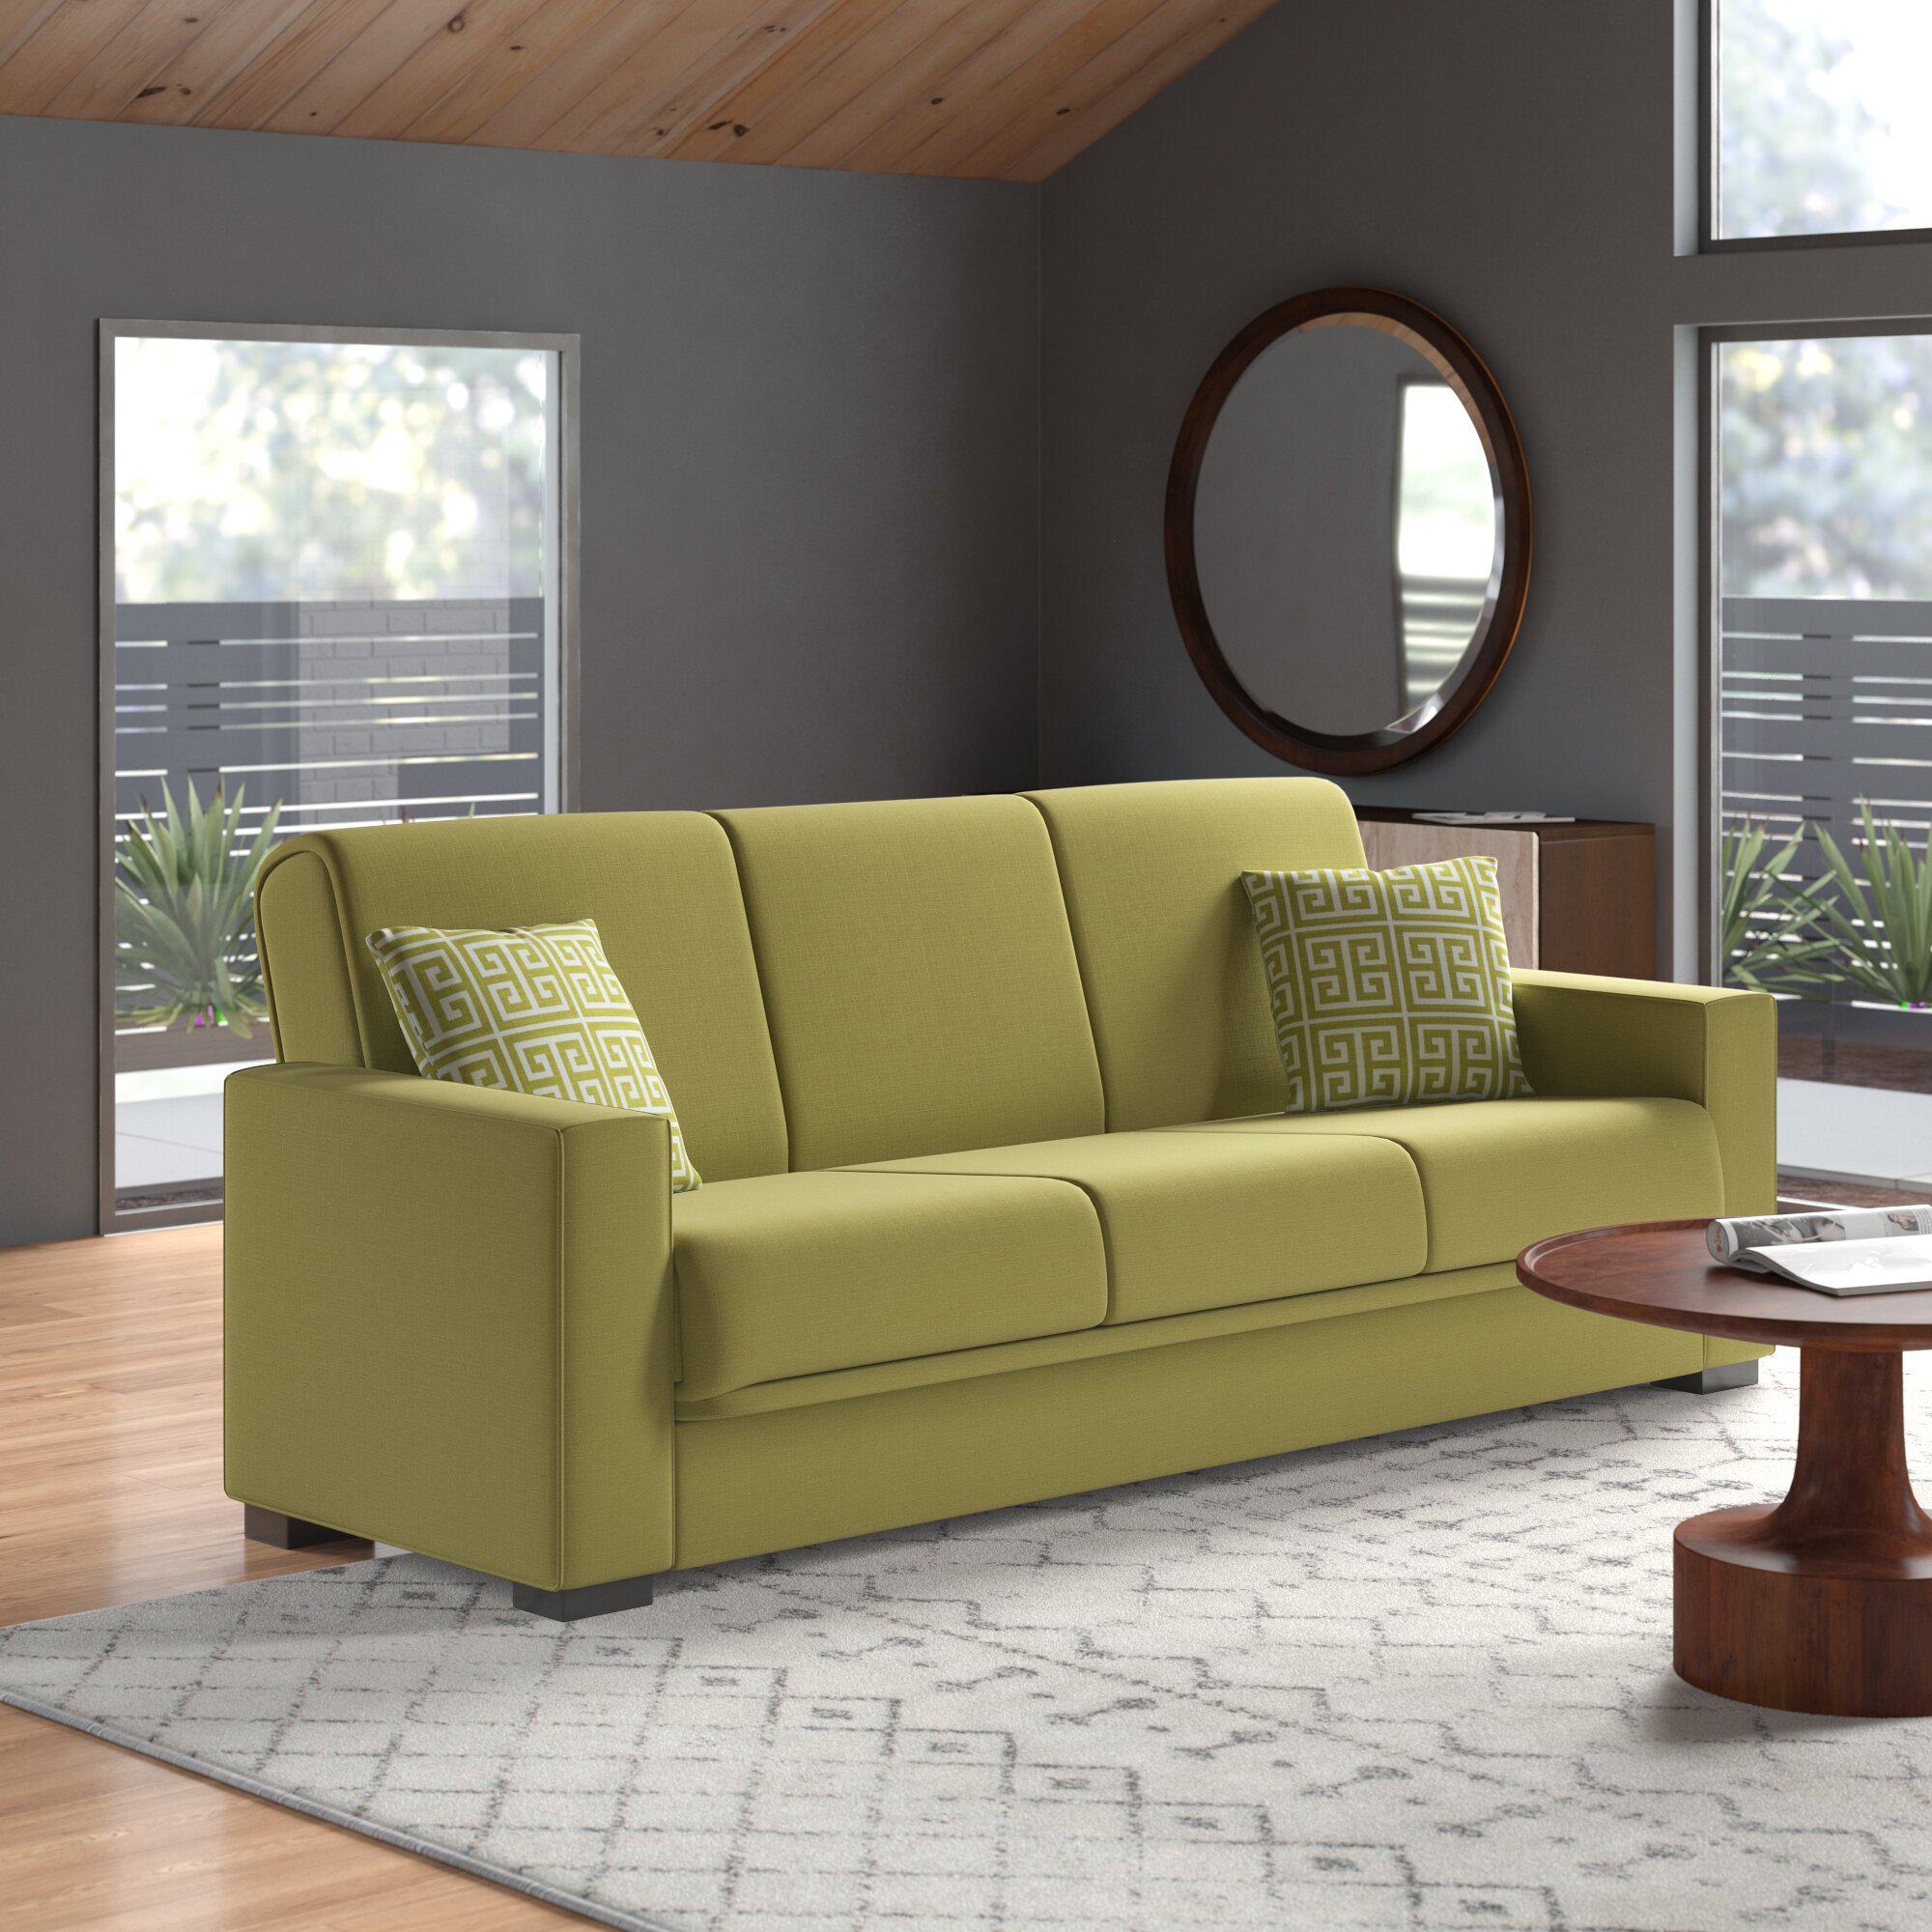 Percy Convertible Sofa Reviews